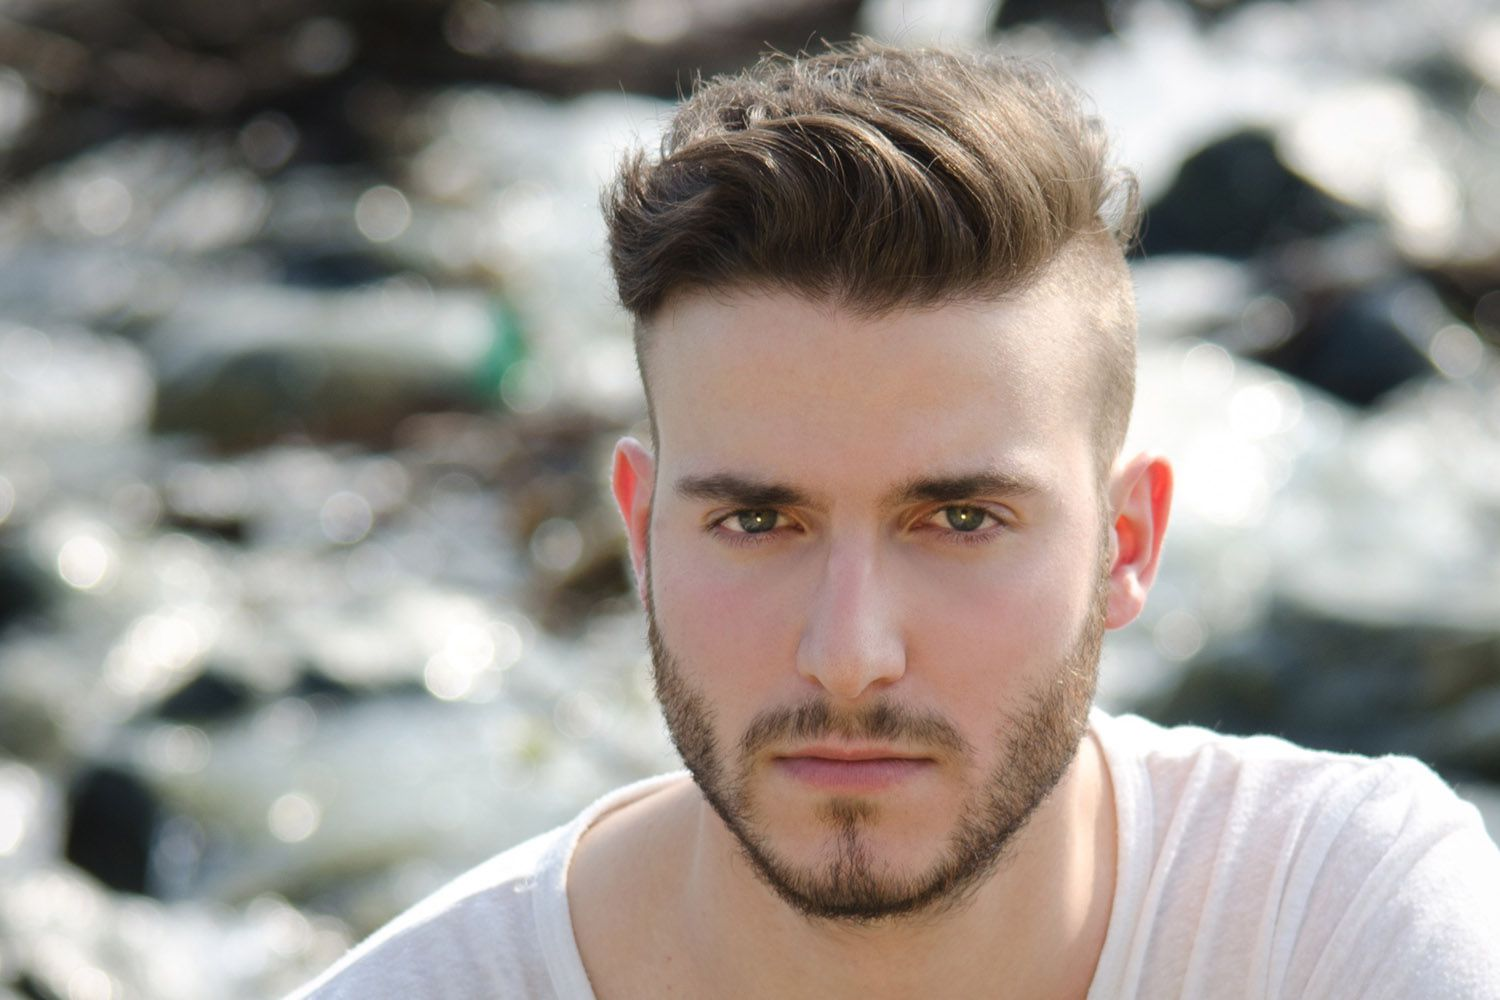 An undercut is essentially an extreme version of a short back and sides. Undercut Hairstyle With Shaved Sides Nice